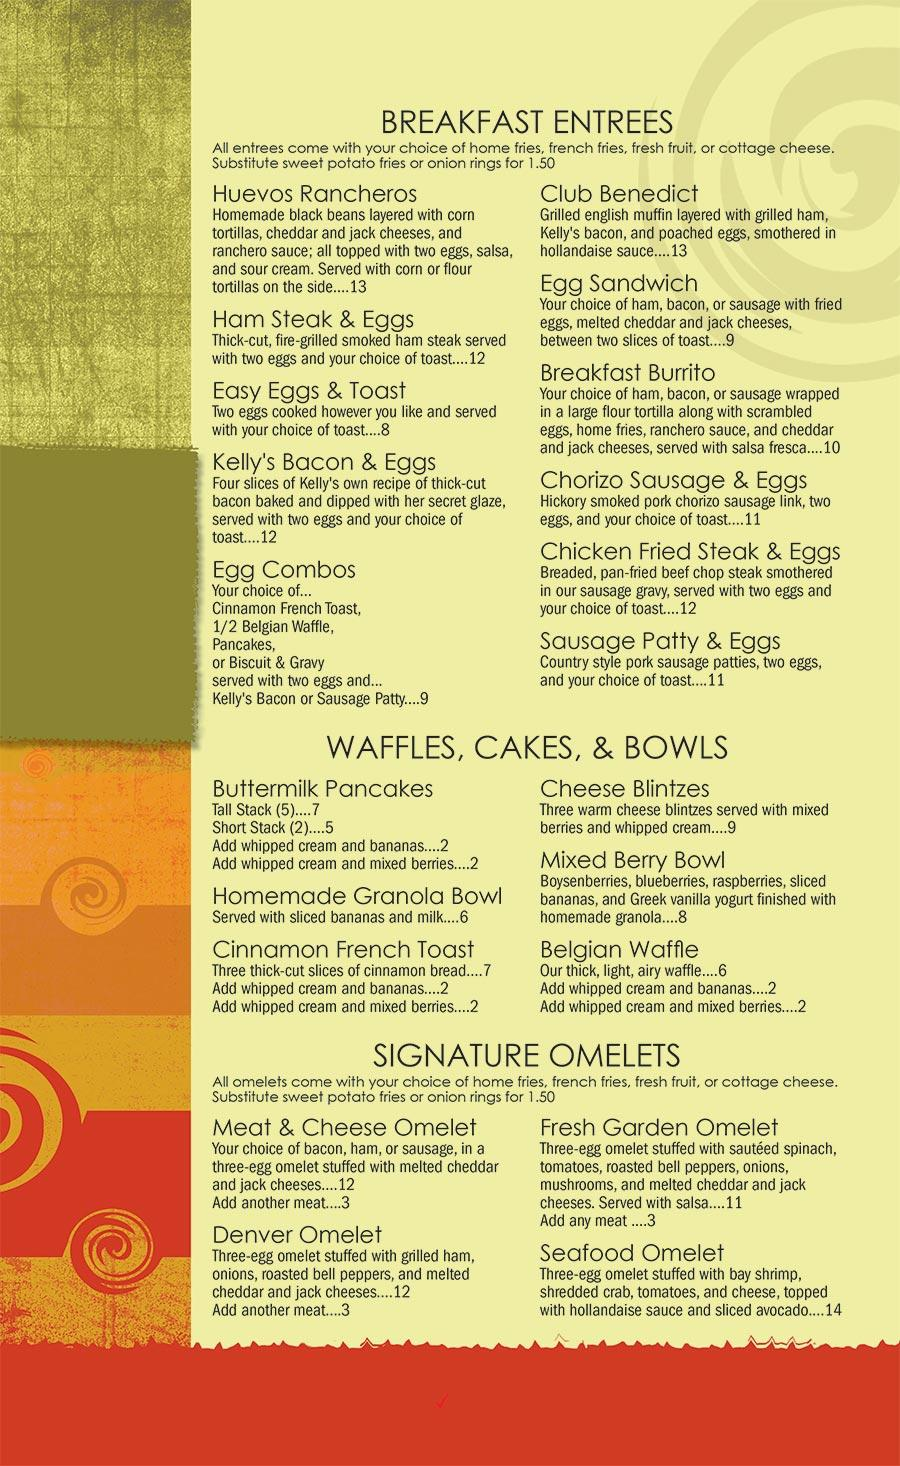 14-05-02 Hunter-Ranch-Golf-Course-and-Restaurant-2014-Breakfast-Menu-Page-1